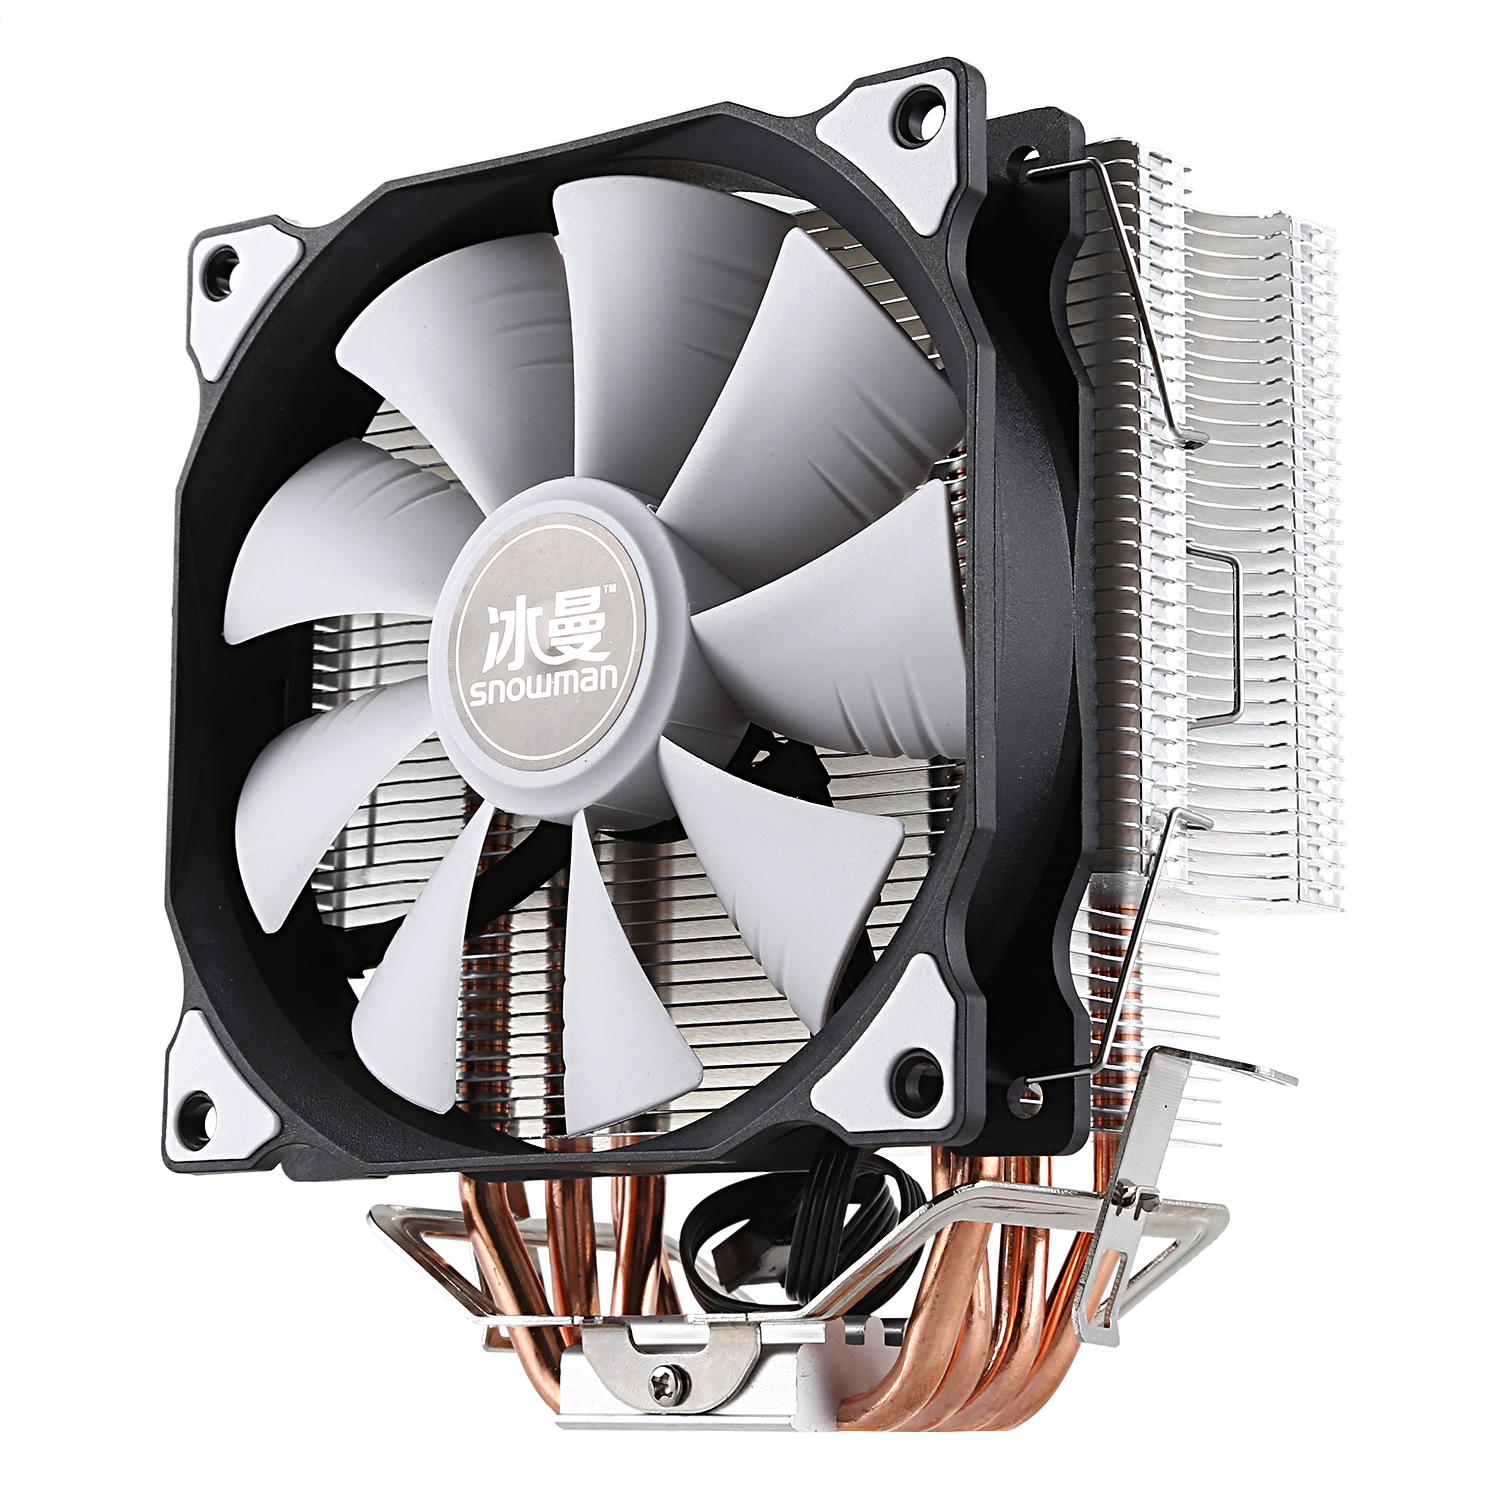 Image 5 - SNOWMAN CPU Cooler Master 5 Direct Contact Heatpipes freeze Tower Cooling System CPU Cooling Fan with PWM Fans-in Fans & Cooling from Computer & Office